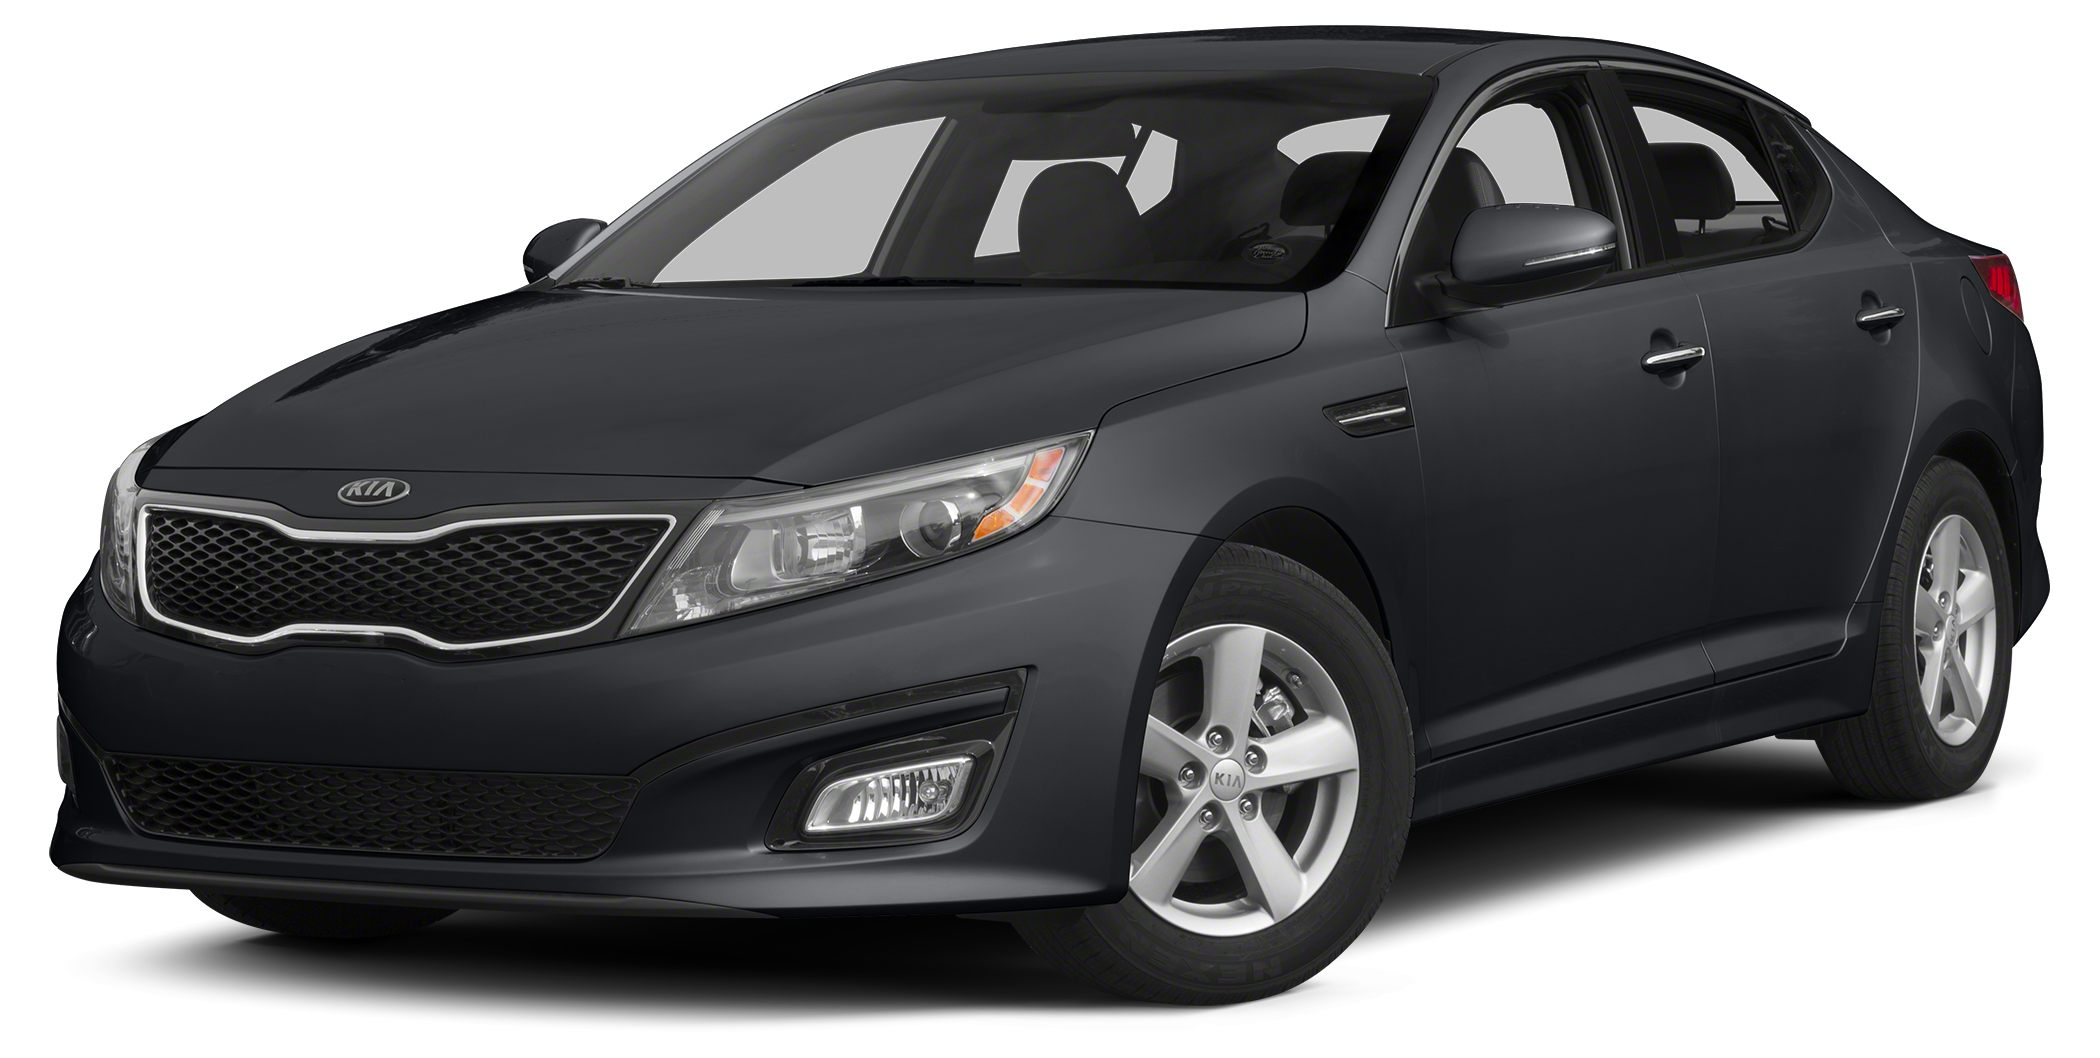 2015 Kia Optima EX With world-class engineering outstanding performance and advanced safety syste